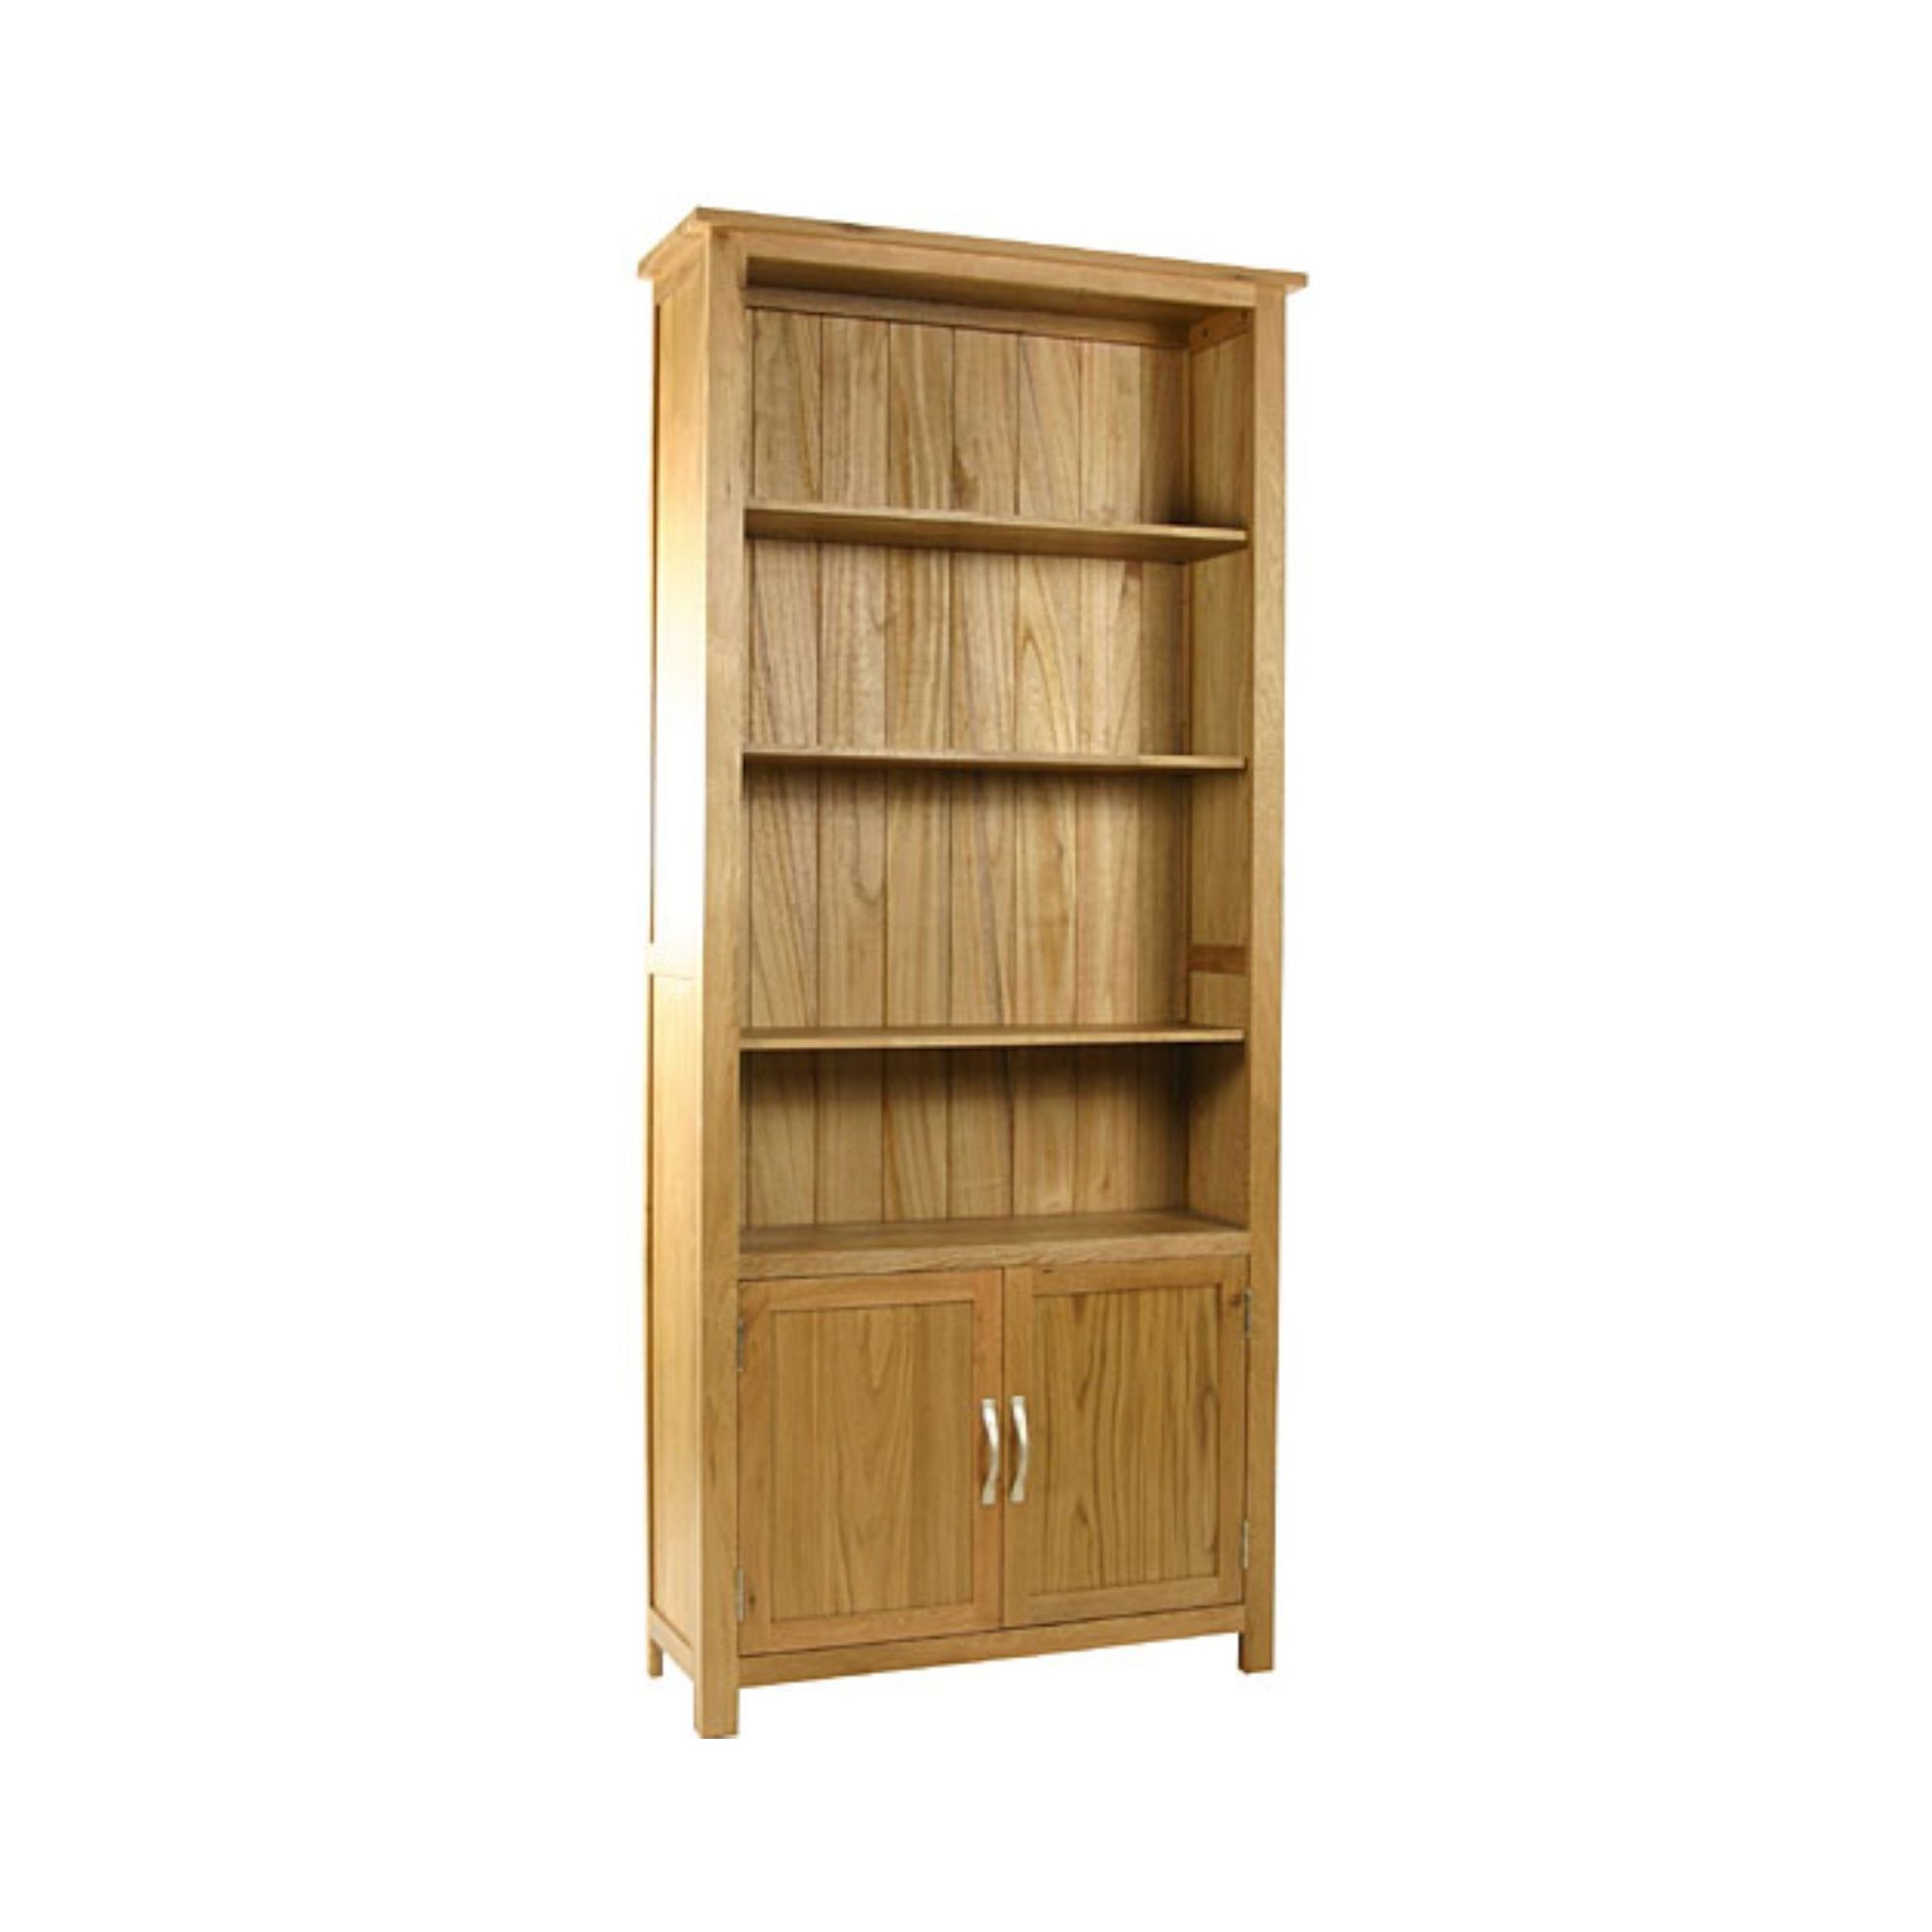 Kelburn Furniture Essentials Cupboard Bookcase in Light Oak Stain and Satin Lacquer at Tesco Direct